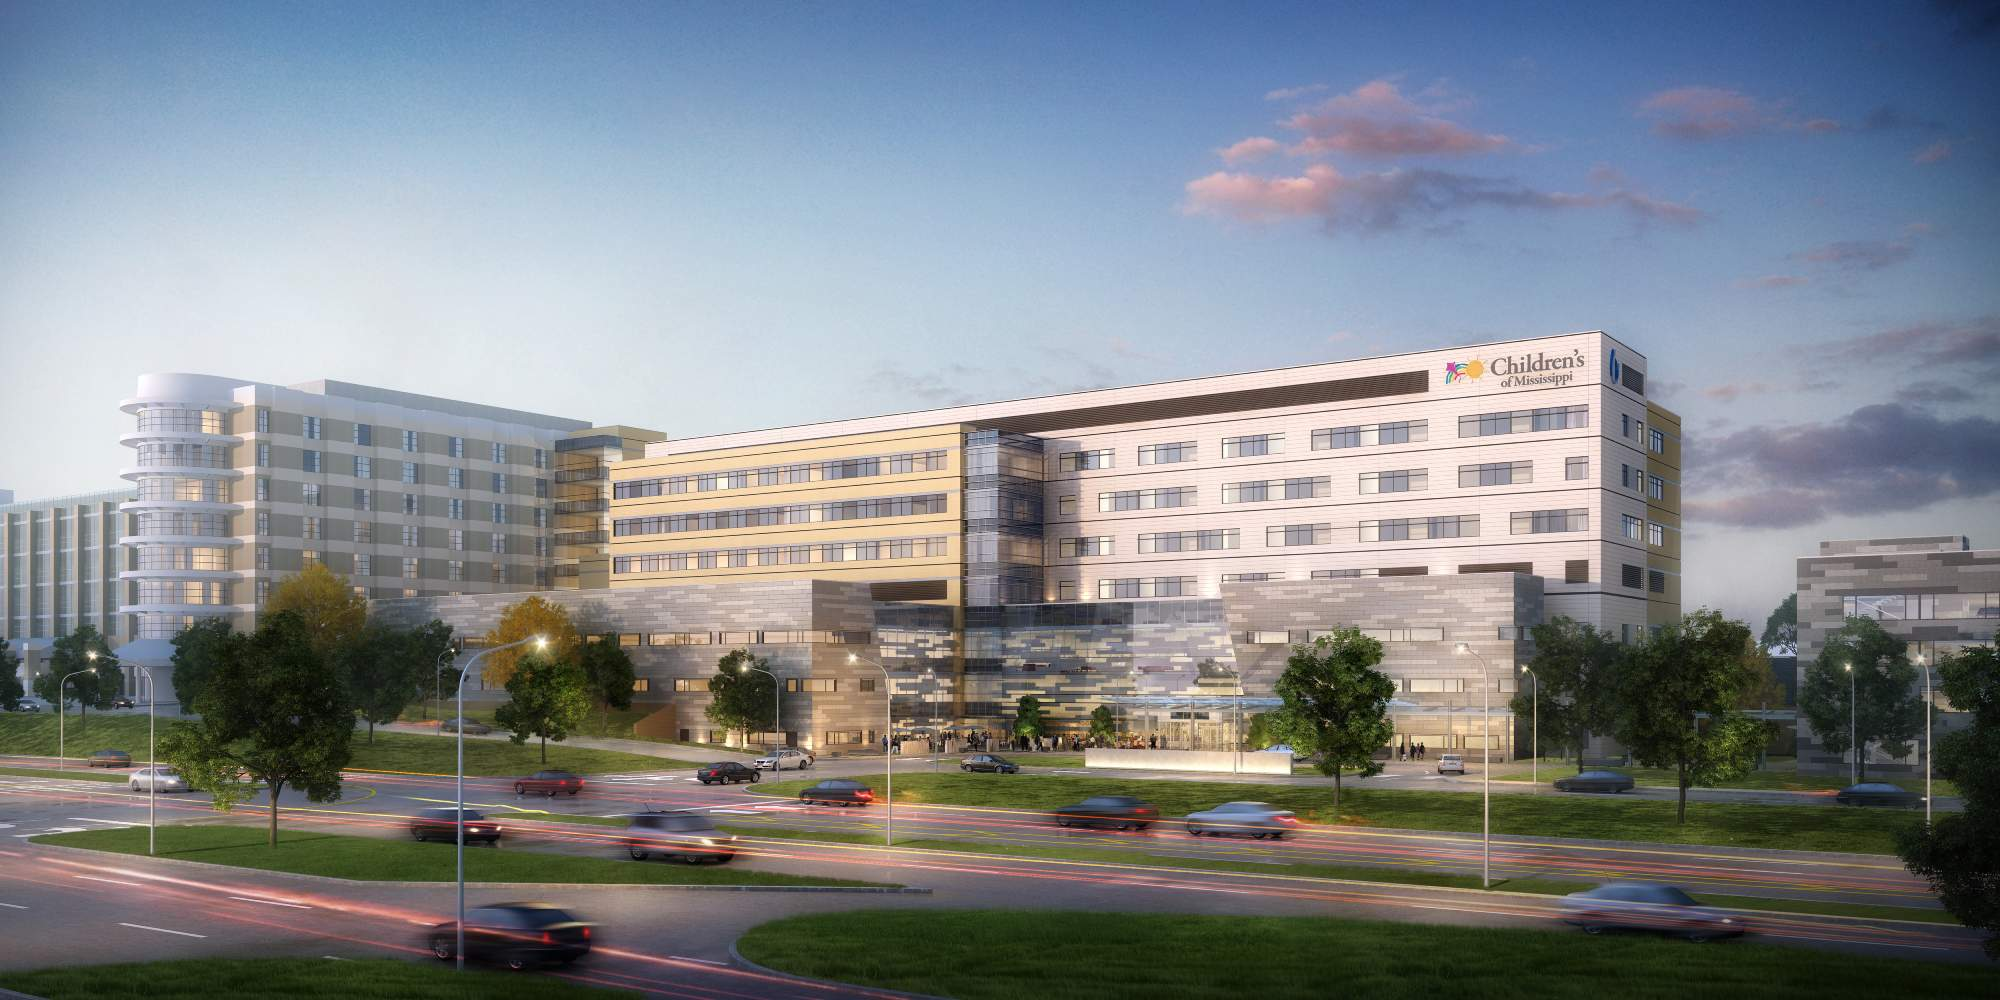 Rendering of the Kathy and Joe Sanderson Tower at Children's of Mississippi Hospita